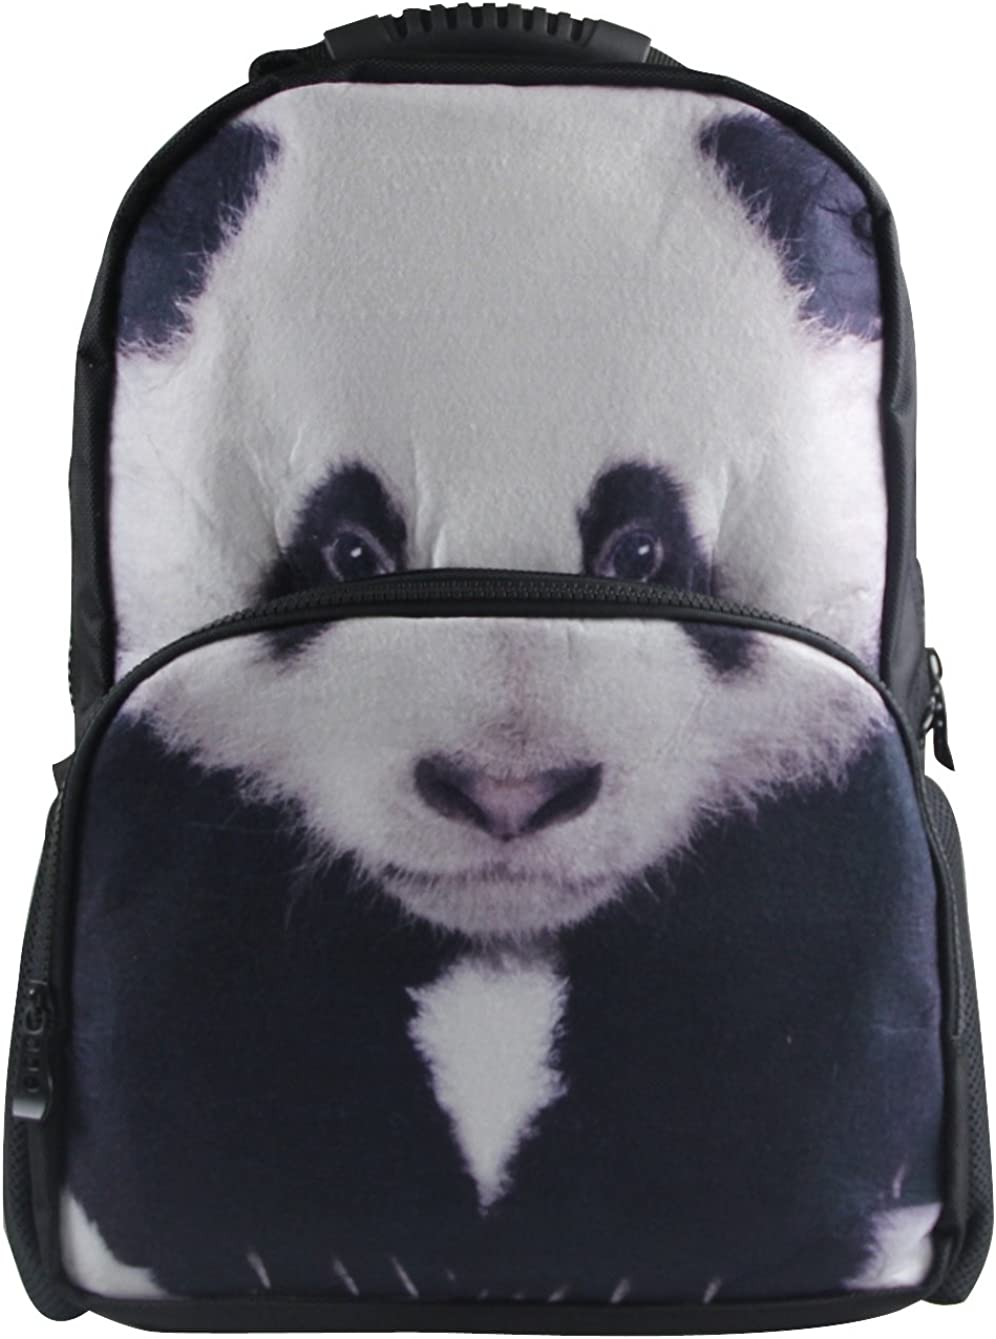 Animal Face 3D Animals Panda Backpack 3D Deep Stereographic Felt Fabric